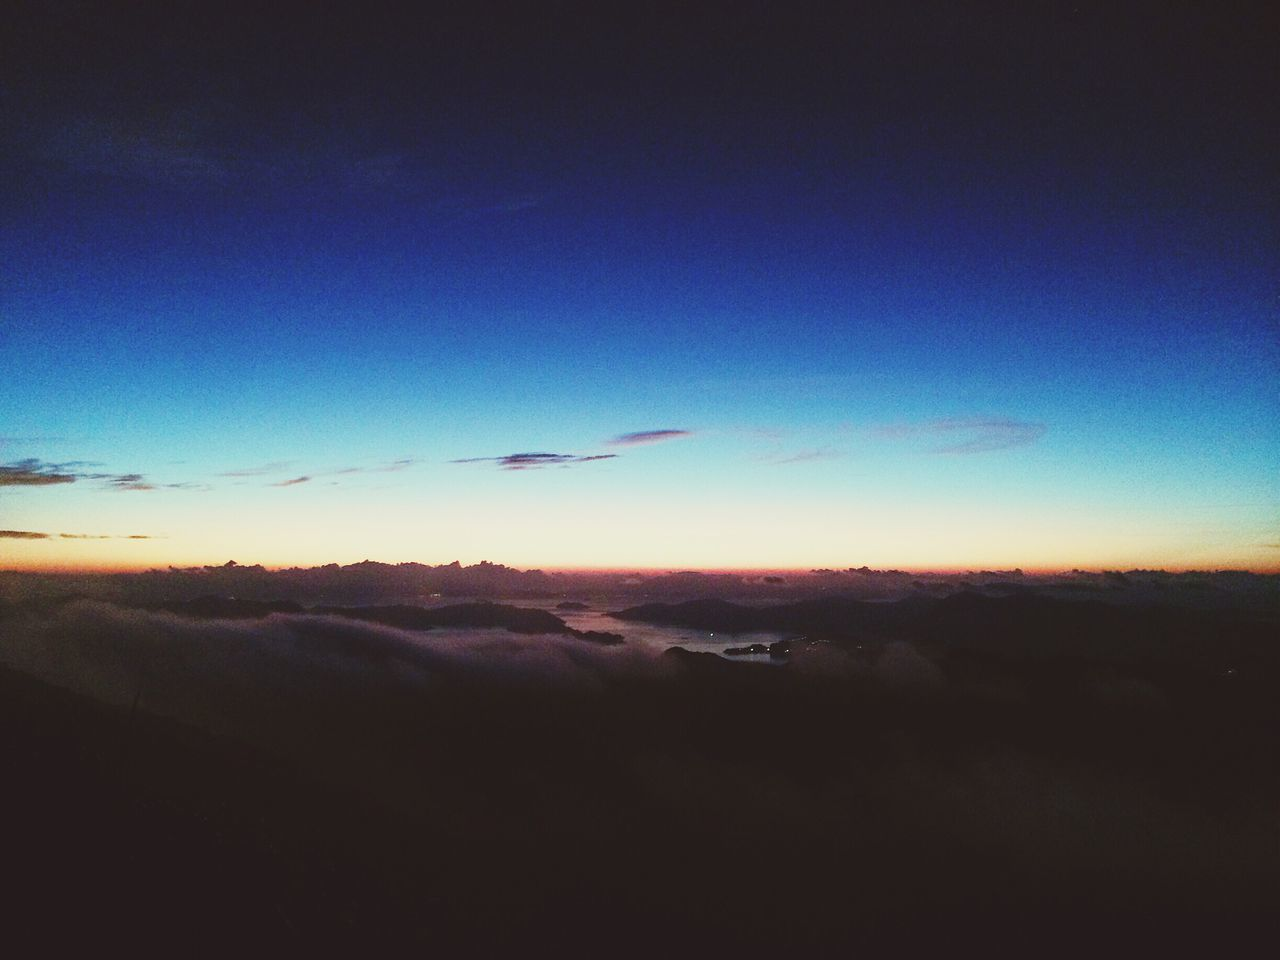 sunset, beauty in nature, nature, sky, scenics, tranquil scene, tranquility, cloud - sky, blue, outdoors, no people, silhouette, sky only, flying, landscape, aerial view, day, bird, airplane wing